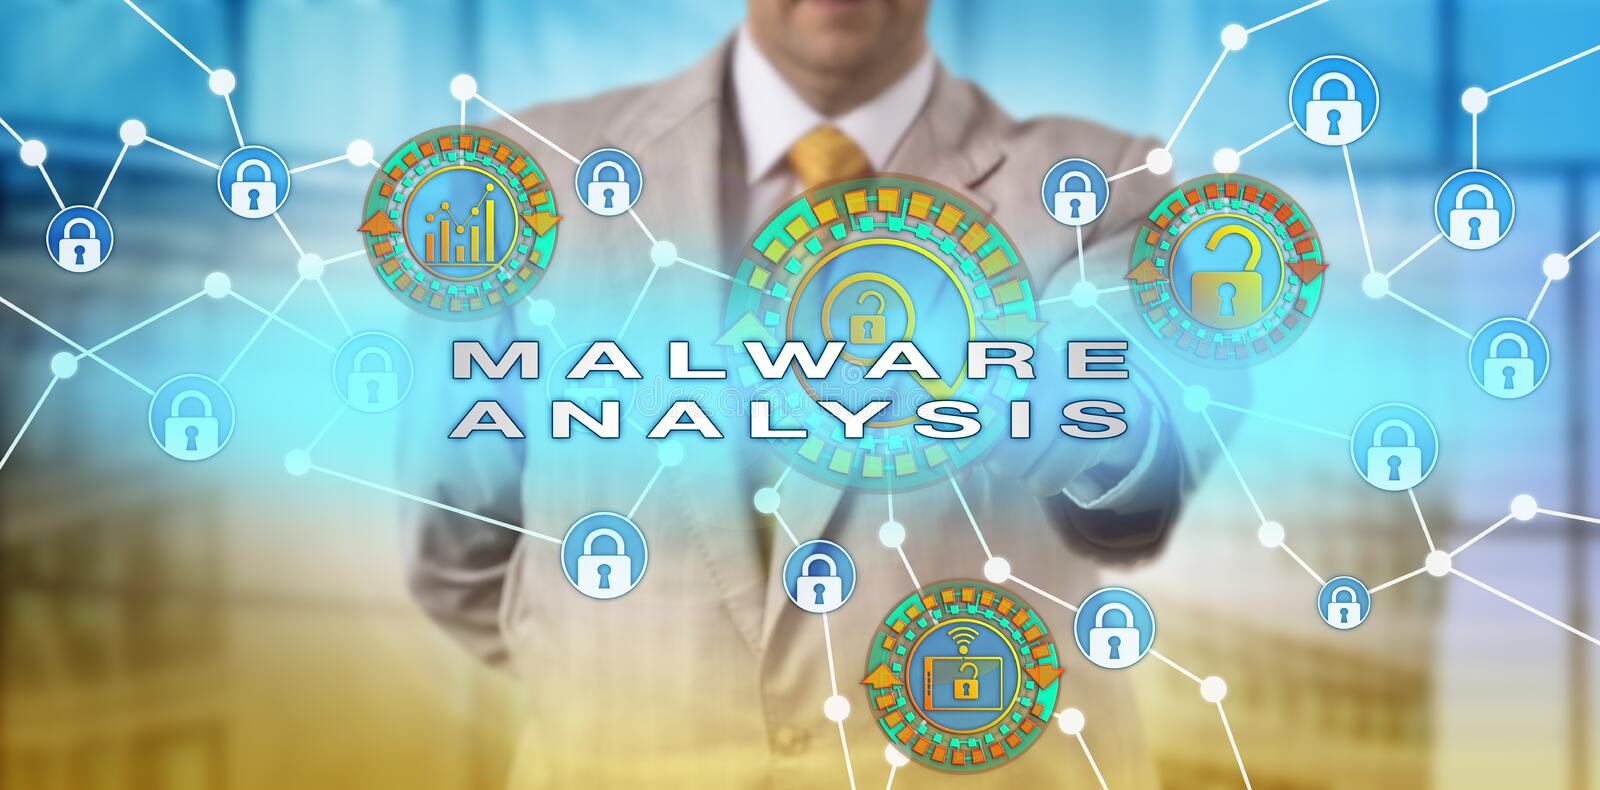 Incident Manager Performing Malware Analysis stock photography